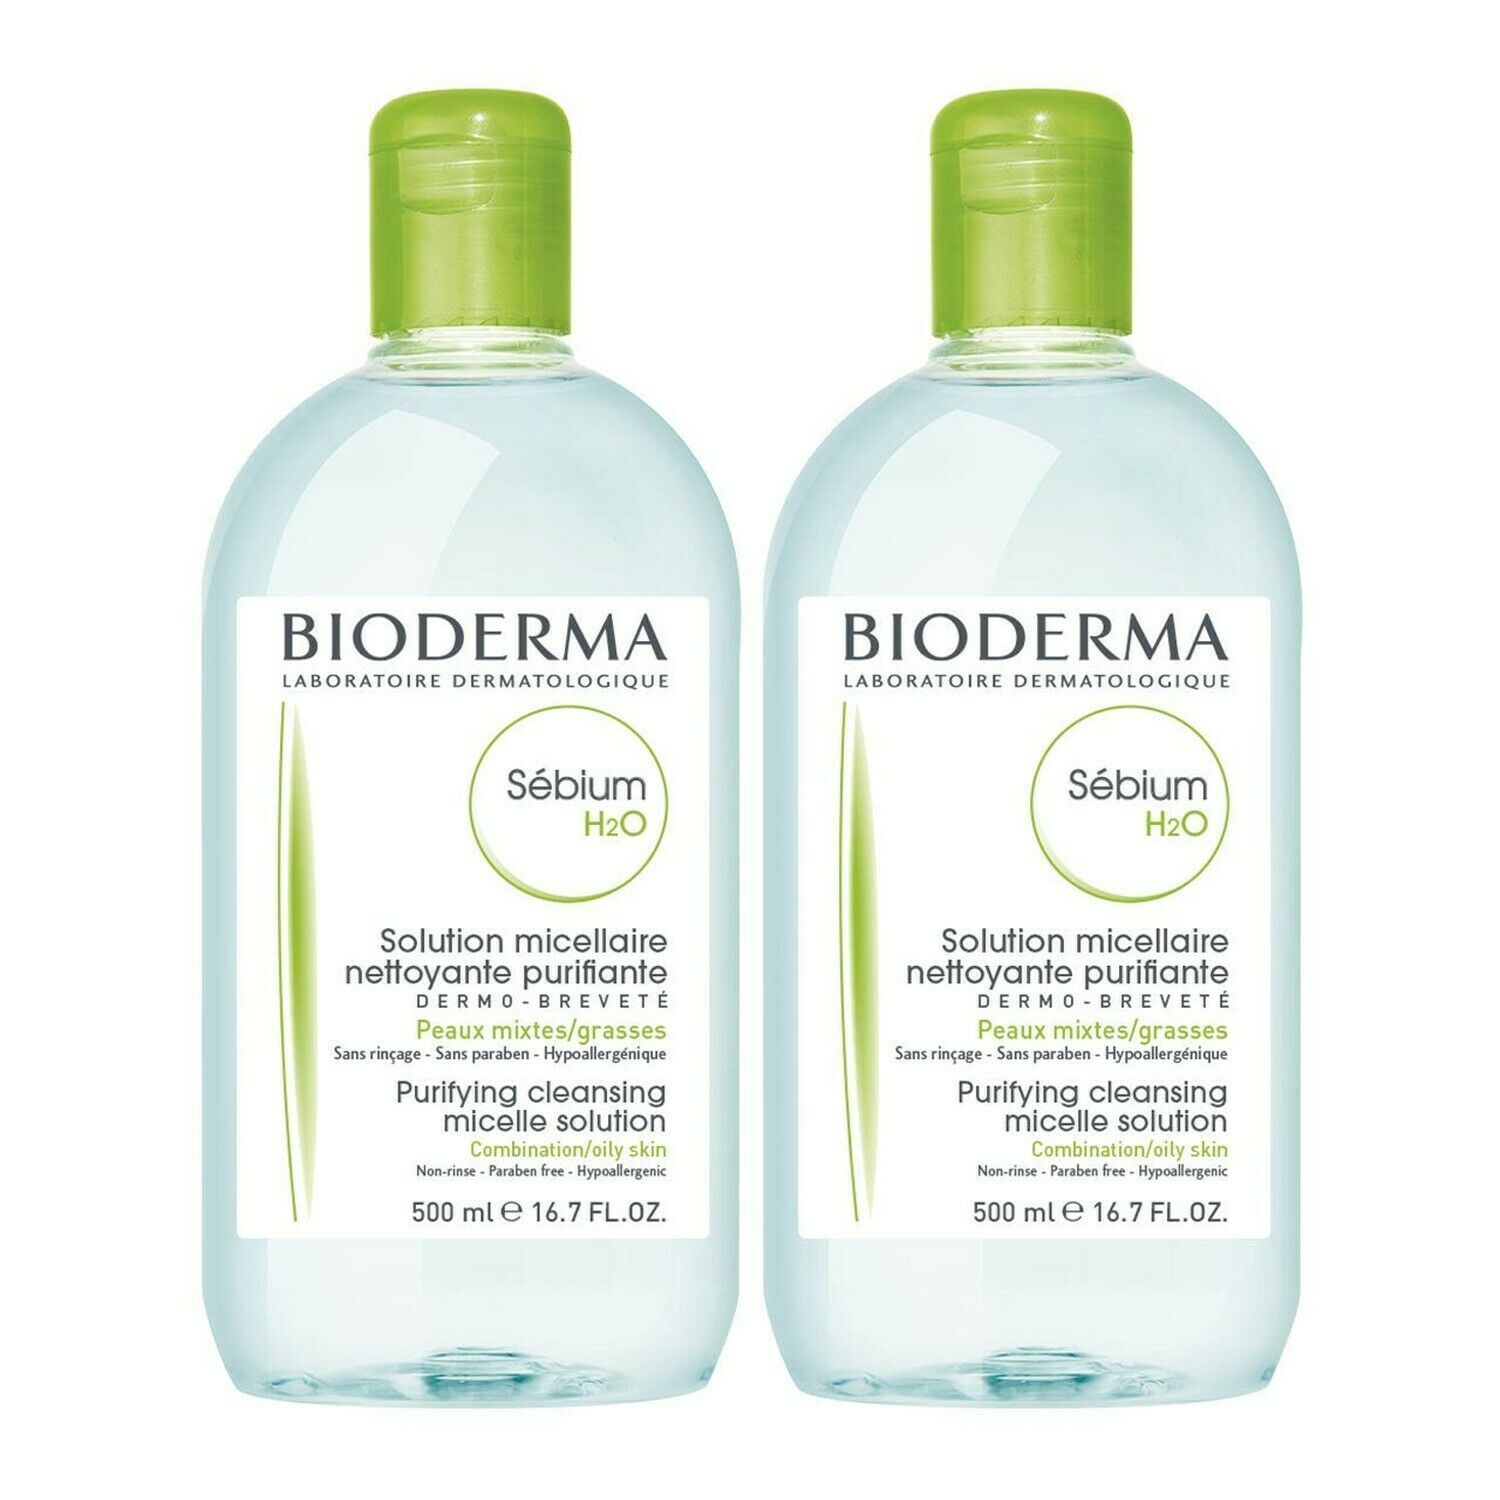 Bioderma Sébium H2O Purifying Micellar Cleansing Water and